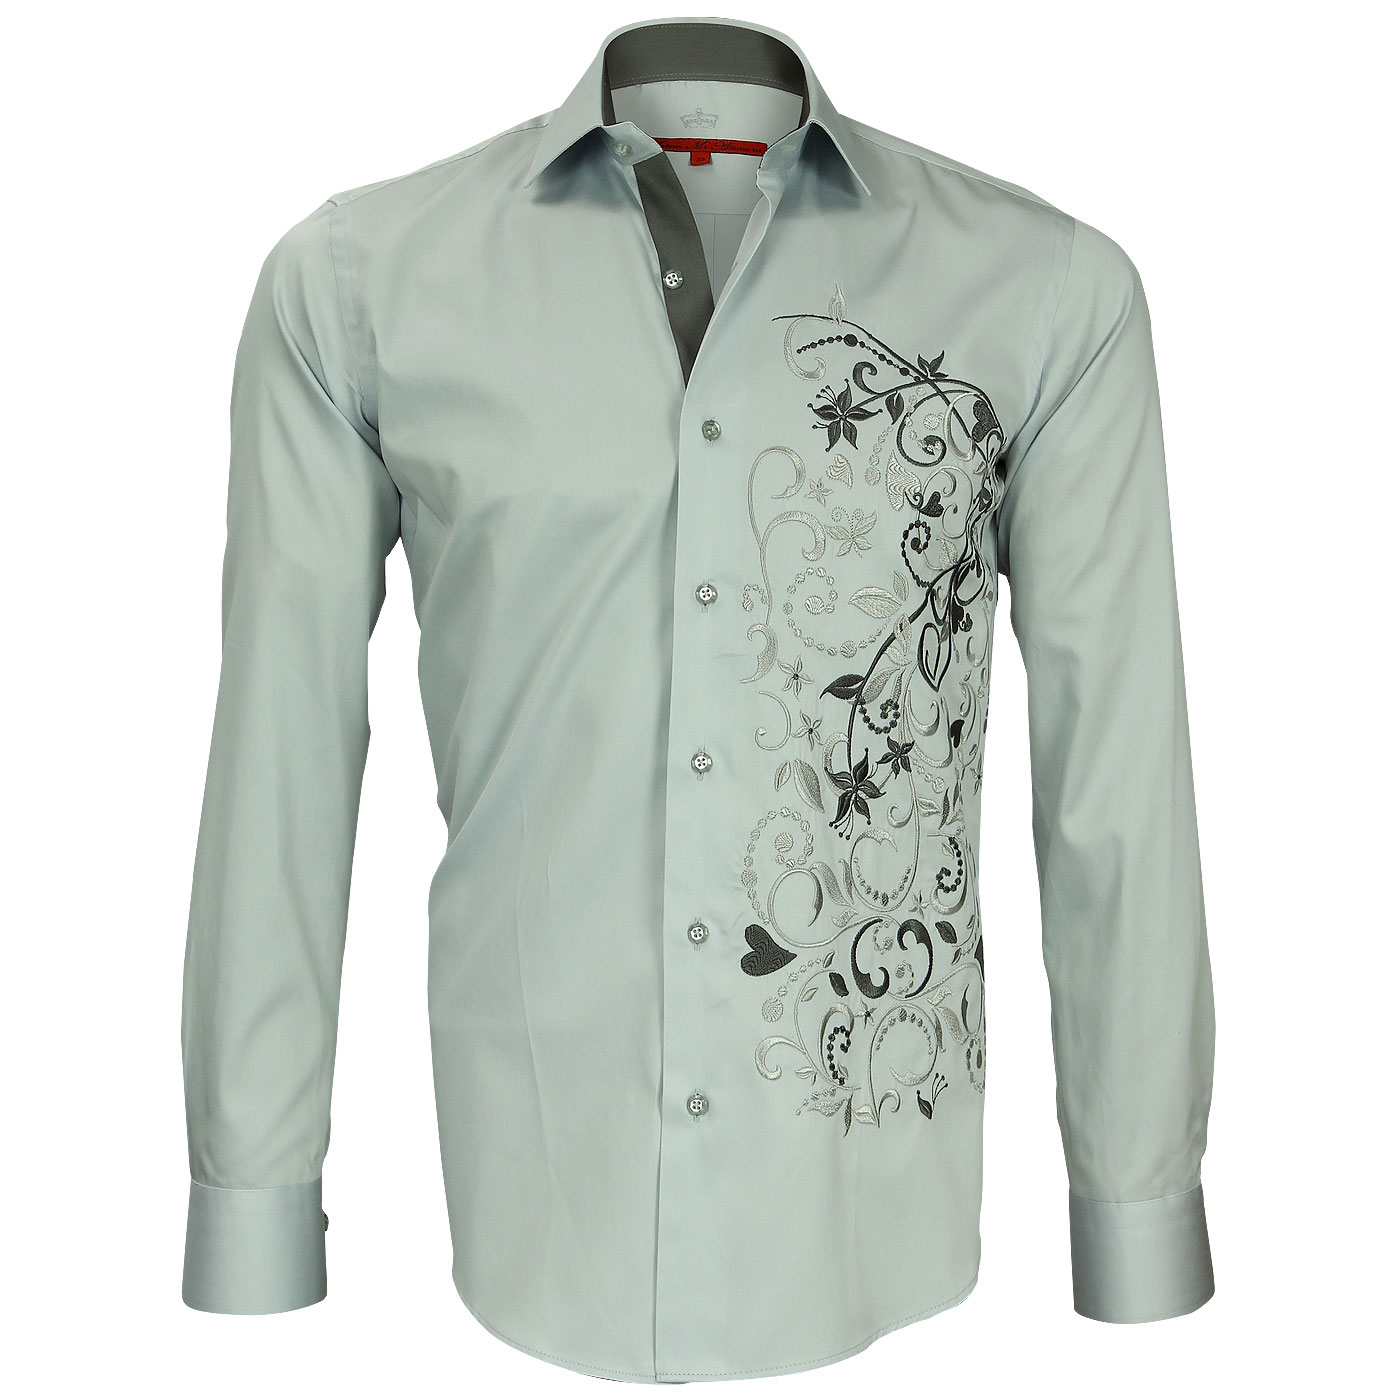 Your Custom Shirt: Embroidered or Printed